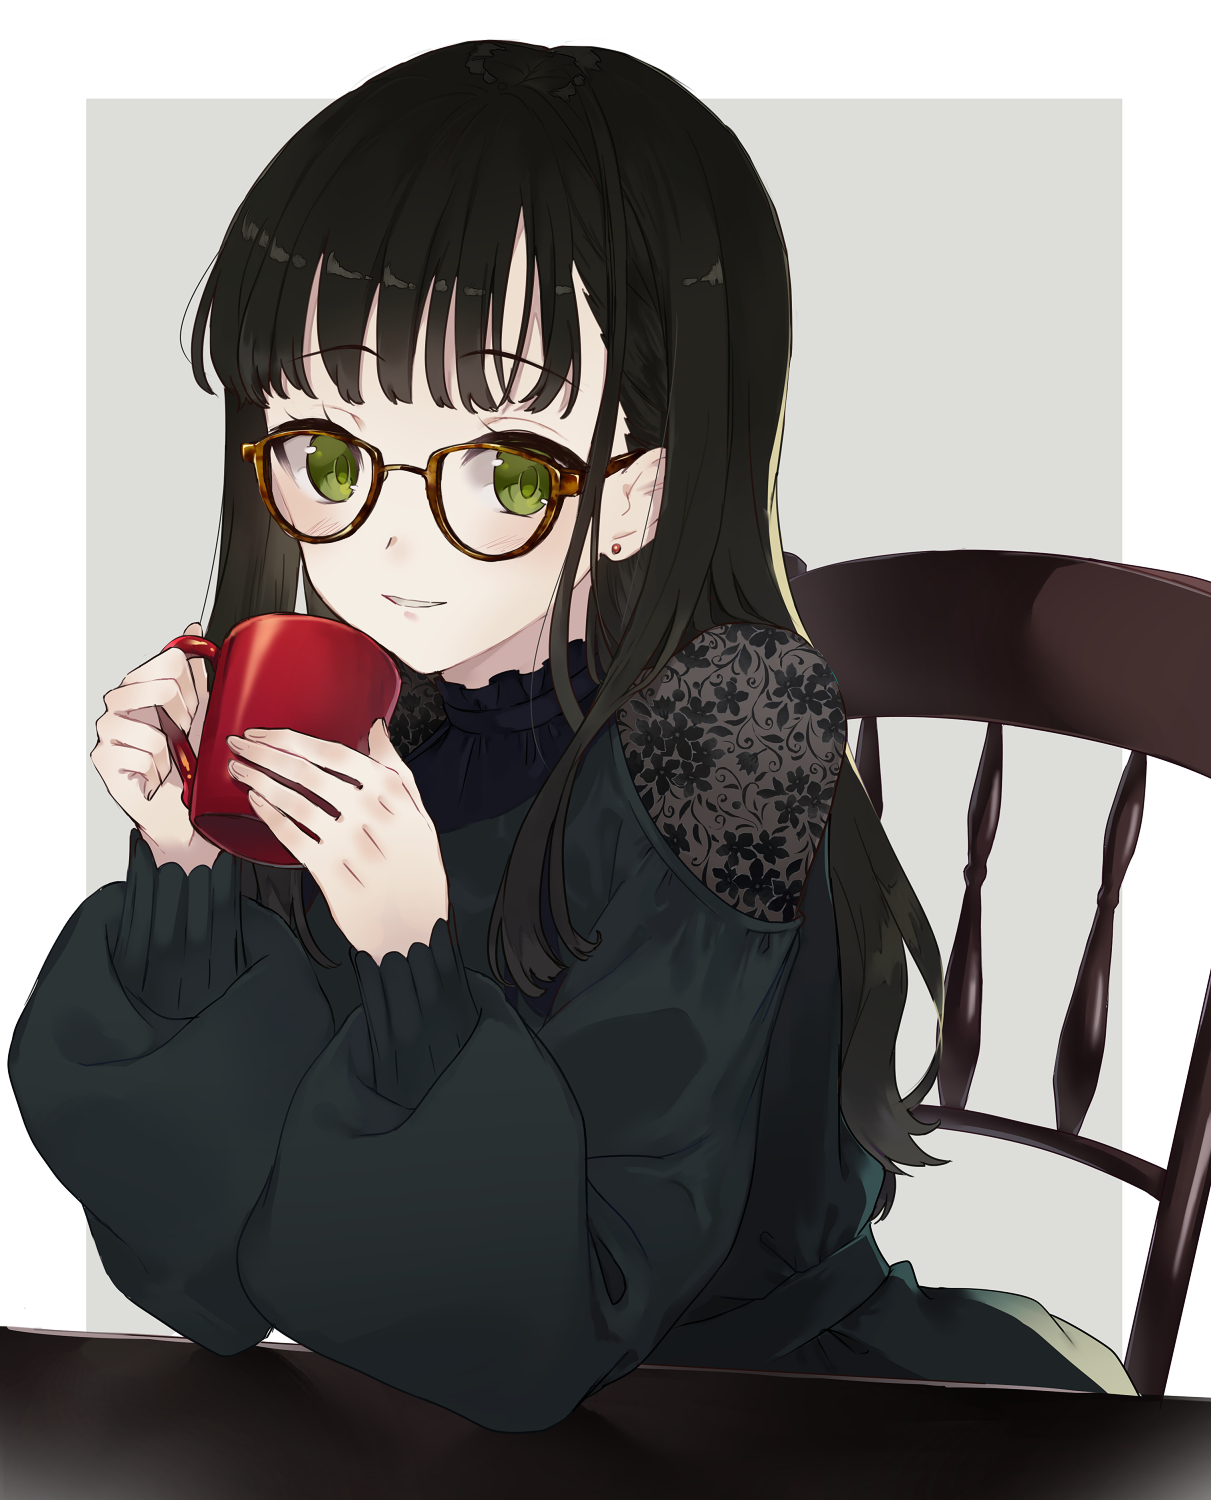 Anime Girl With Black Hair And Glasses : anime, black, glasses, Wallpaper, Anime, Girls,, Simple, Background,, Black, Hair,, Glasses,, Green, Eyes,, Original, Characters, 1211x1500, Richs, 1580451, Wallpapers, WallHere